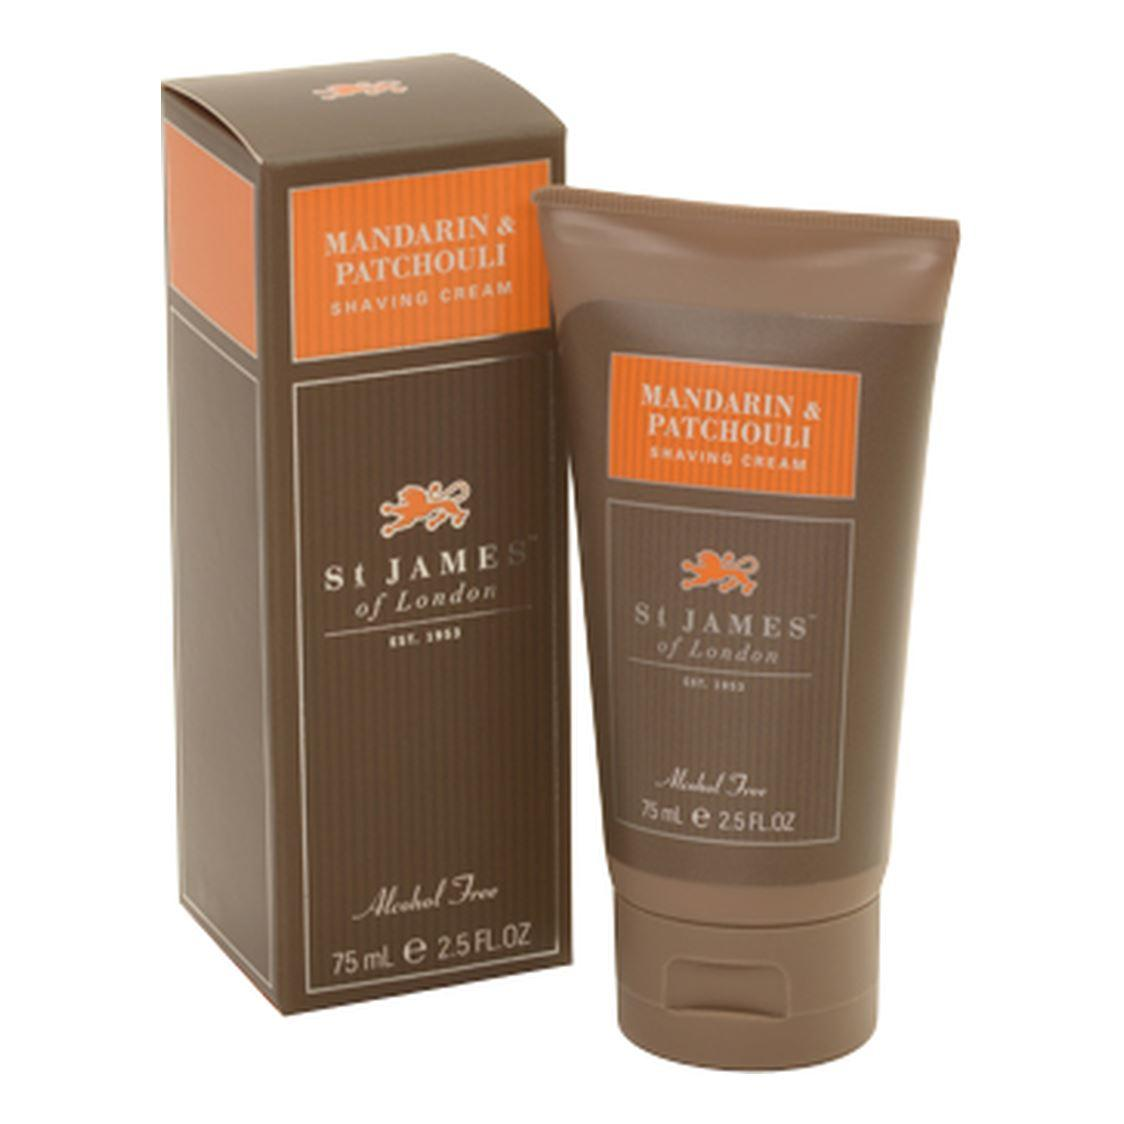 St James of London Mandarin & Patchouli Shaving Cream Tube